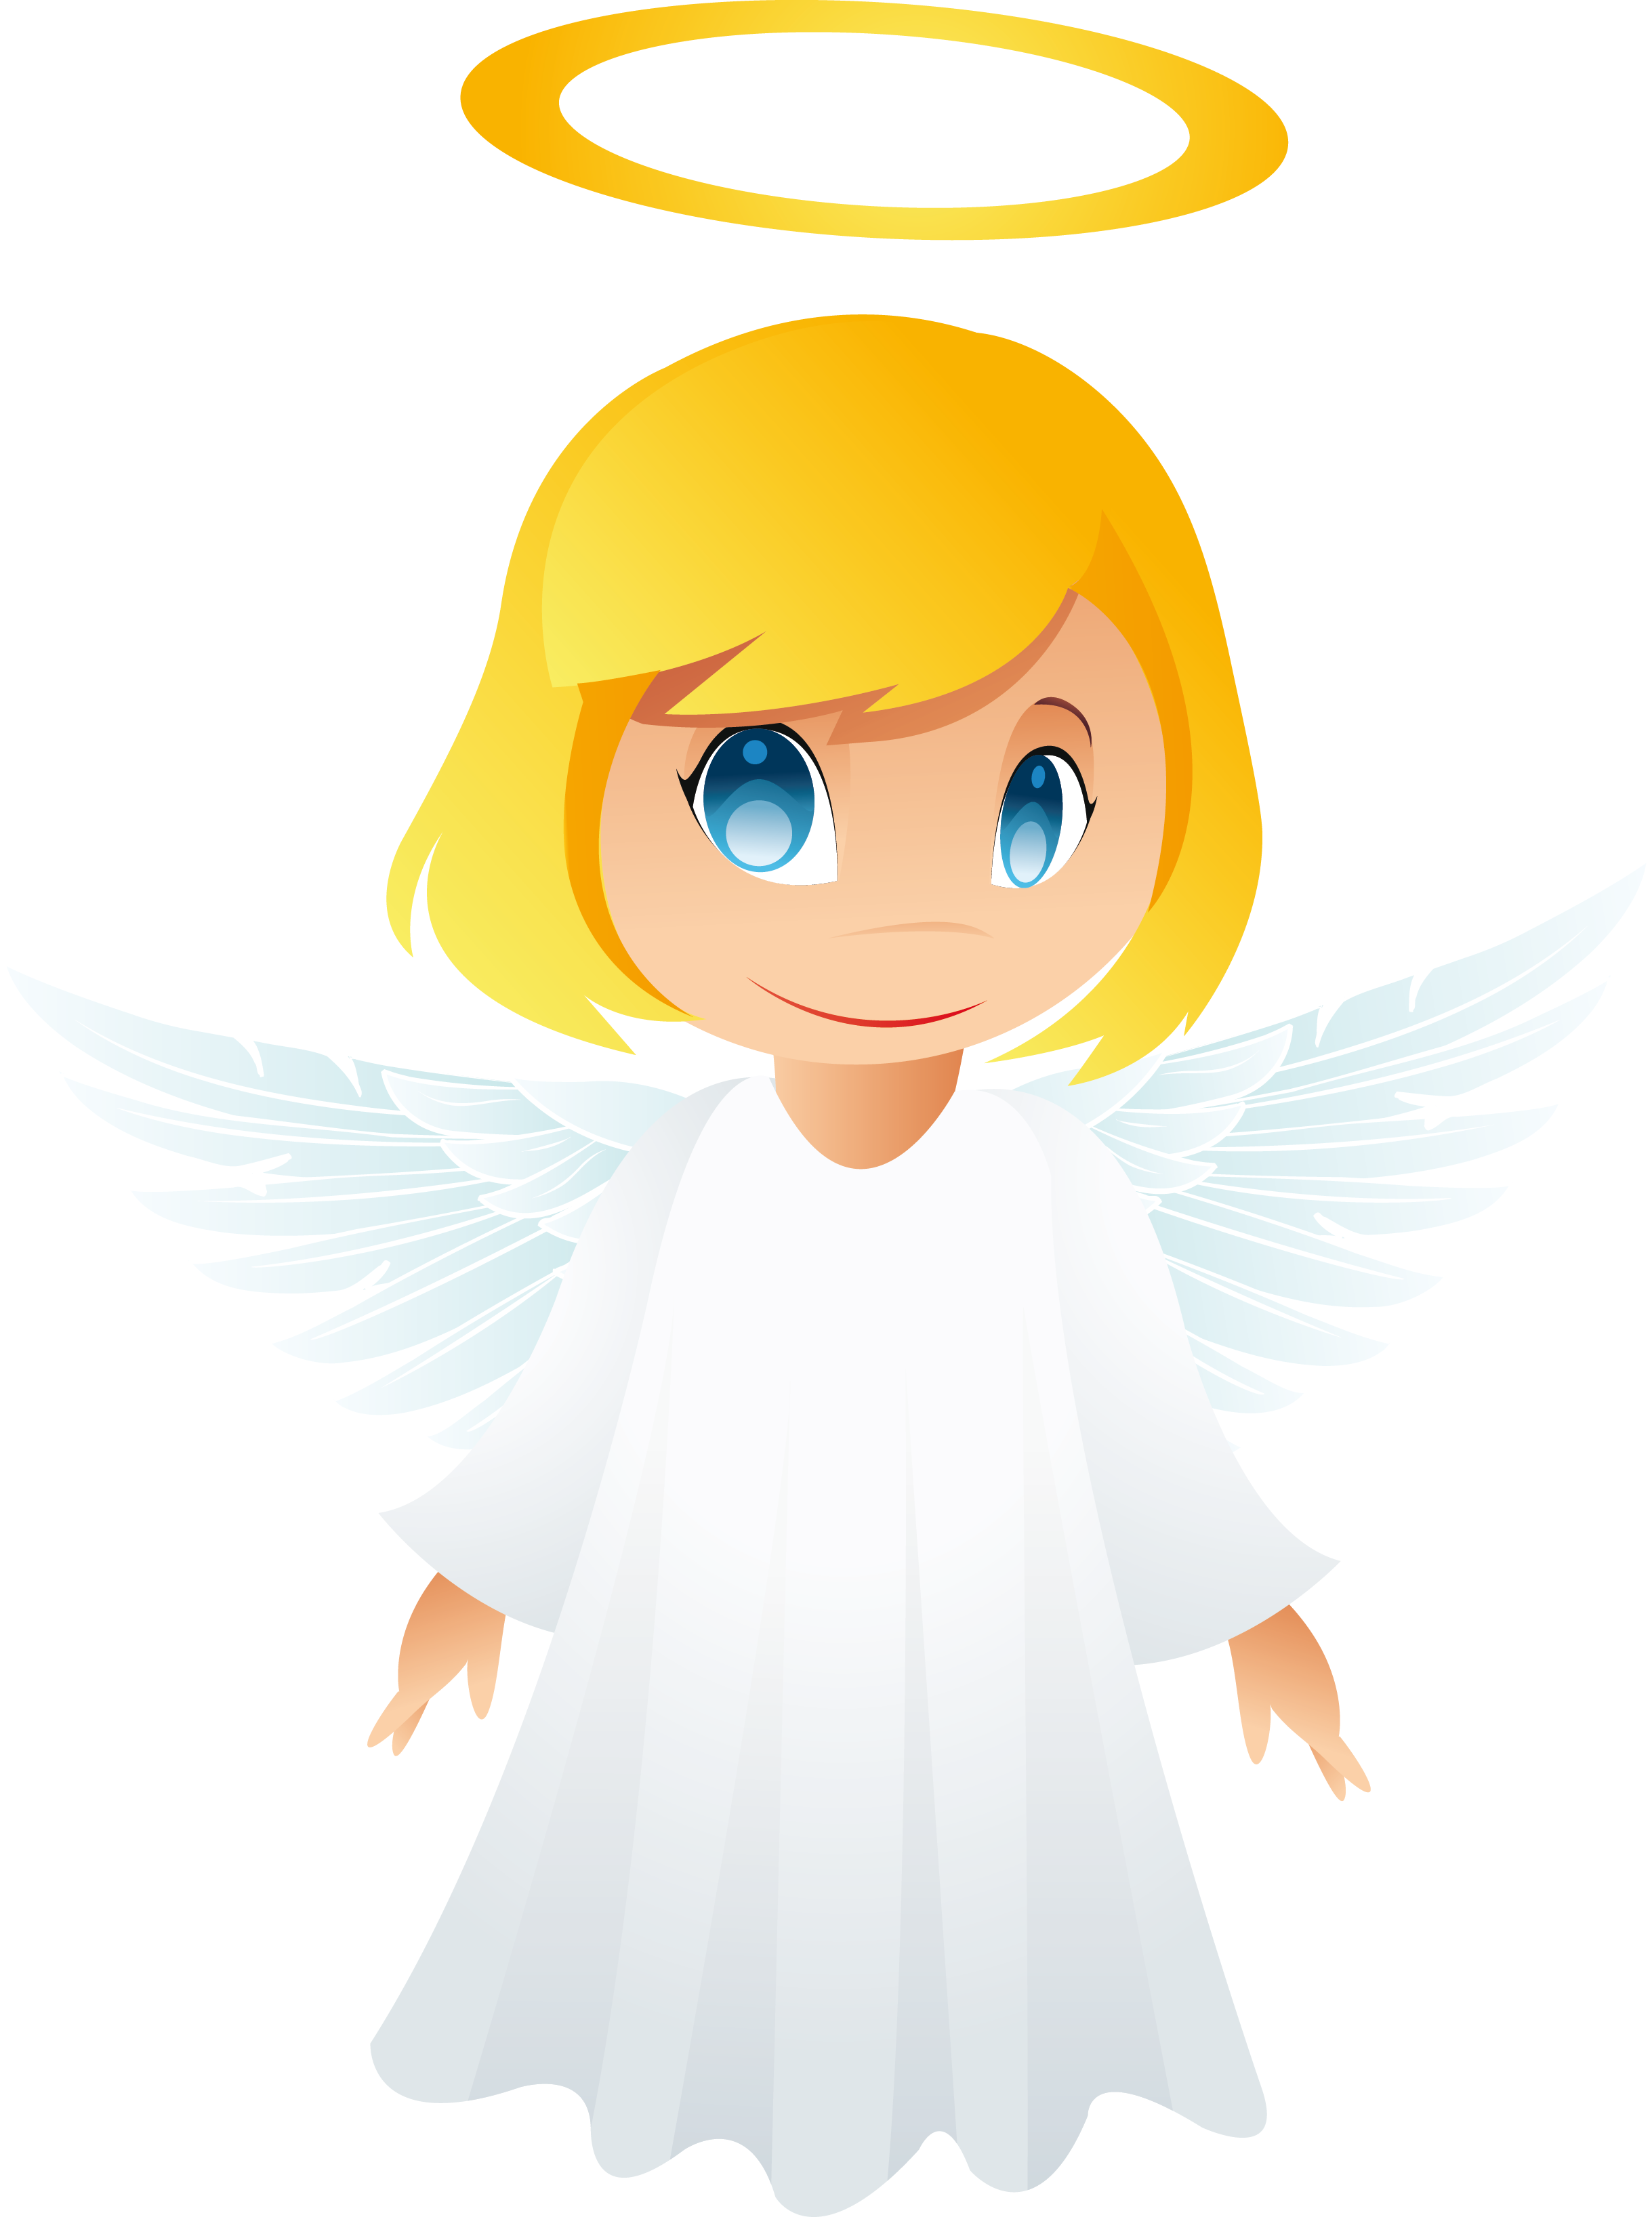 Angel Images Free - Cliparts.co